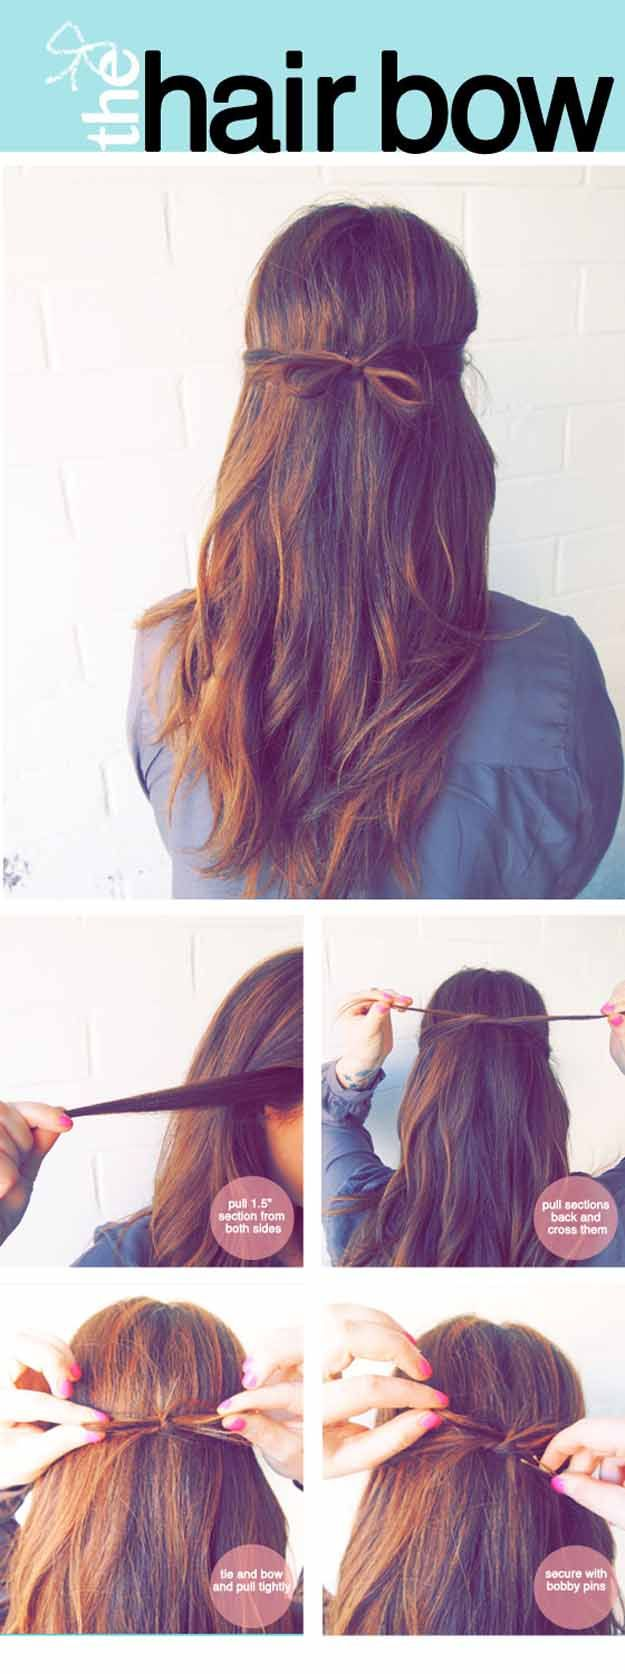 Quick And Easy Hairstyles For Straight Hair The Tidy Hair Bow Popular Haircuts And Simple Step By Step Hair Styles Long Hair Styles Five Minute Hairstyles